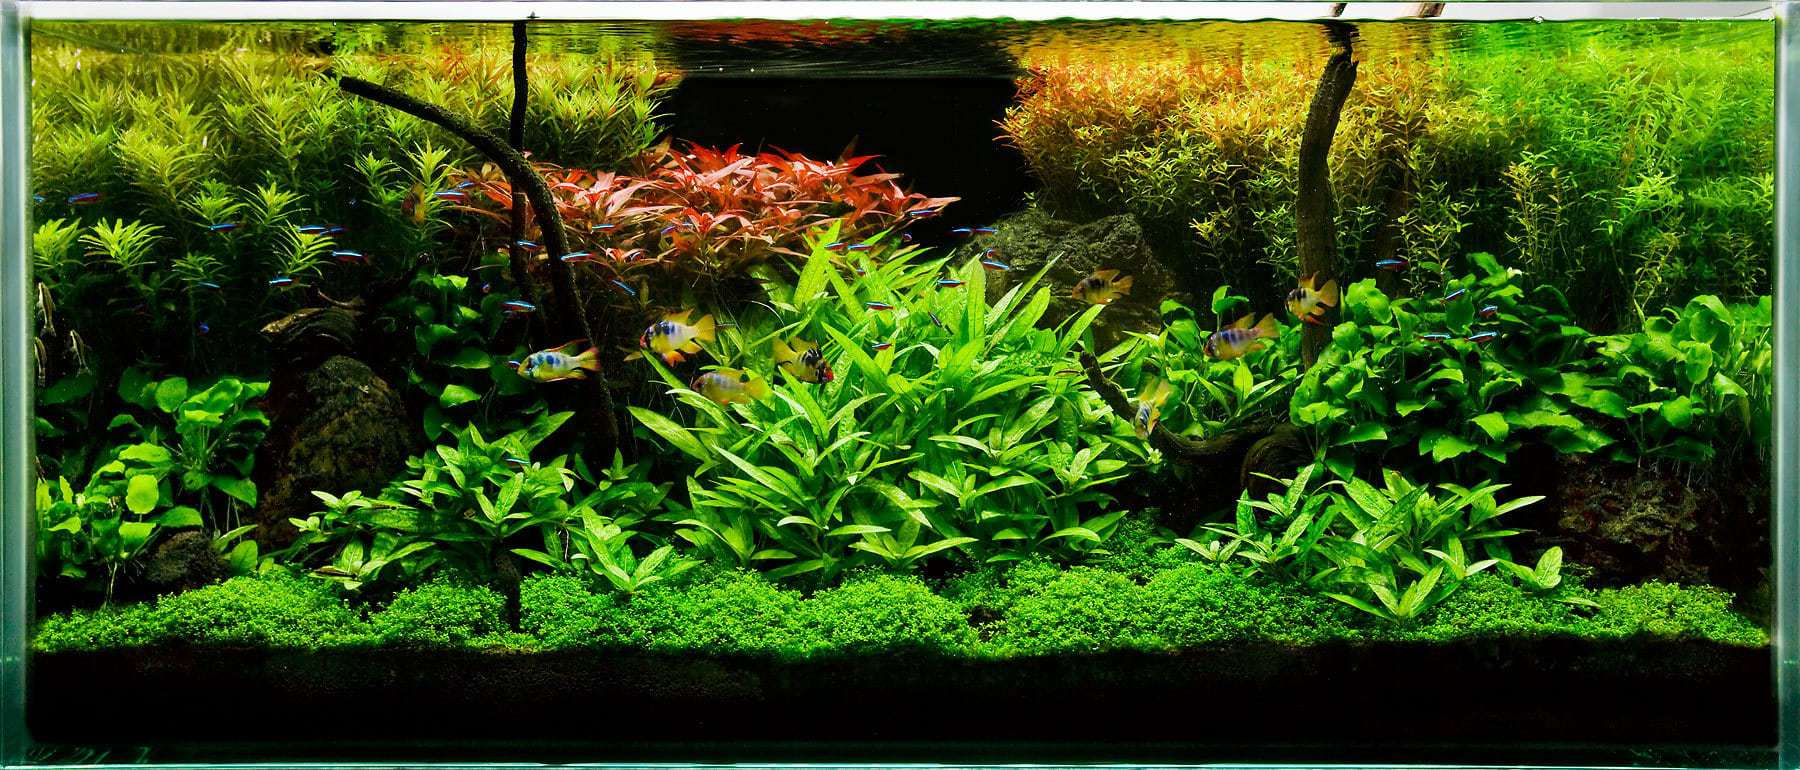 Top 5 tetras for beginners fishkeeping advice for Tetra fish tanks